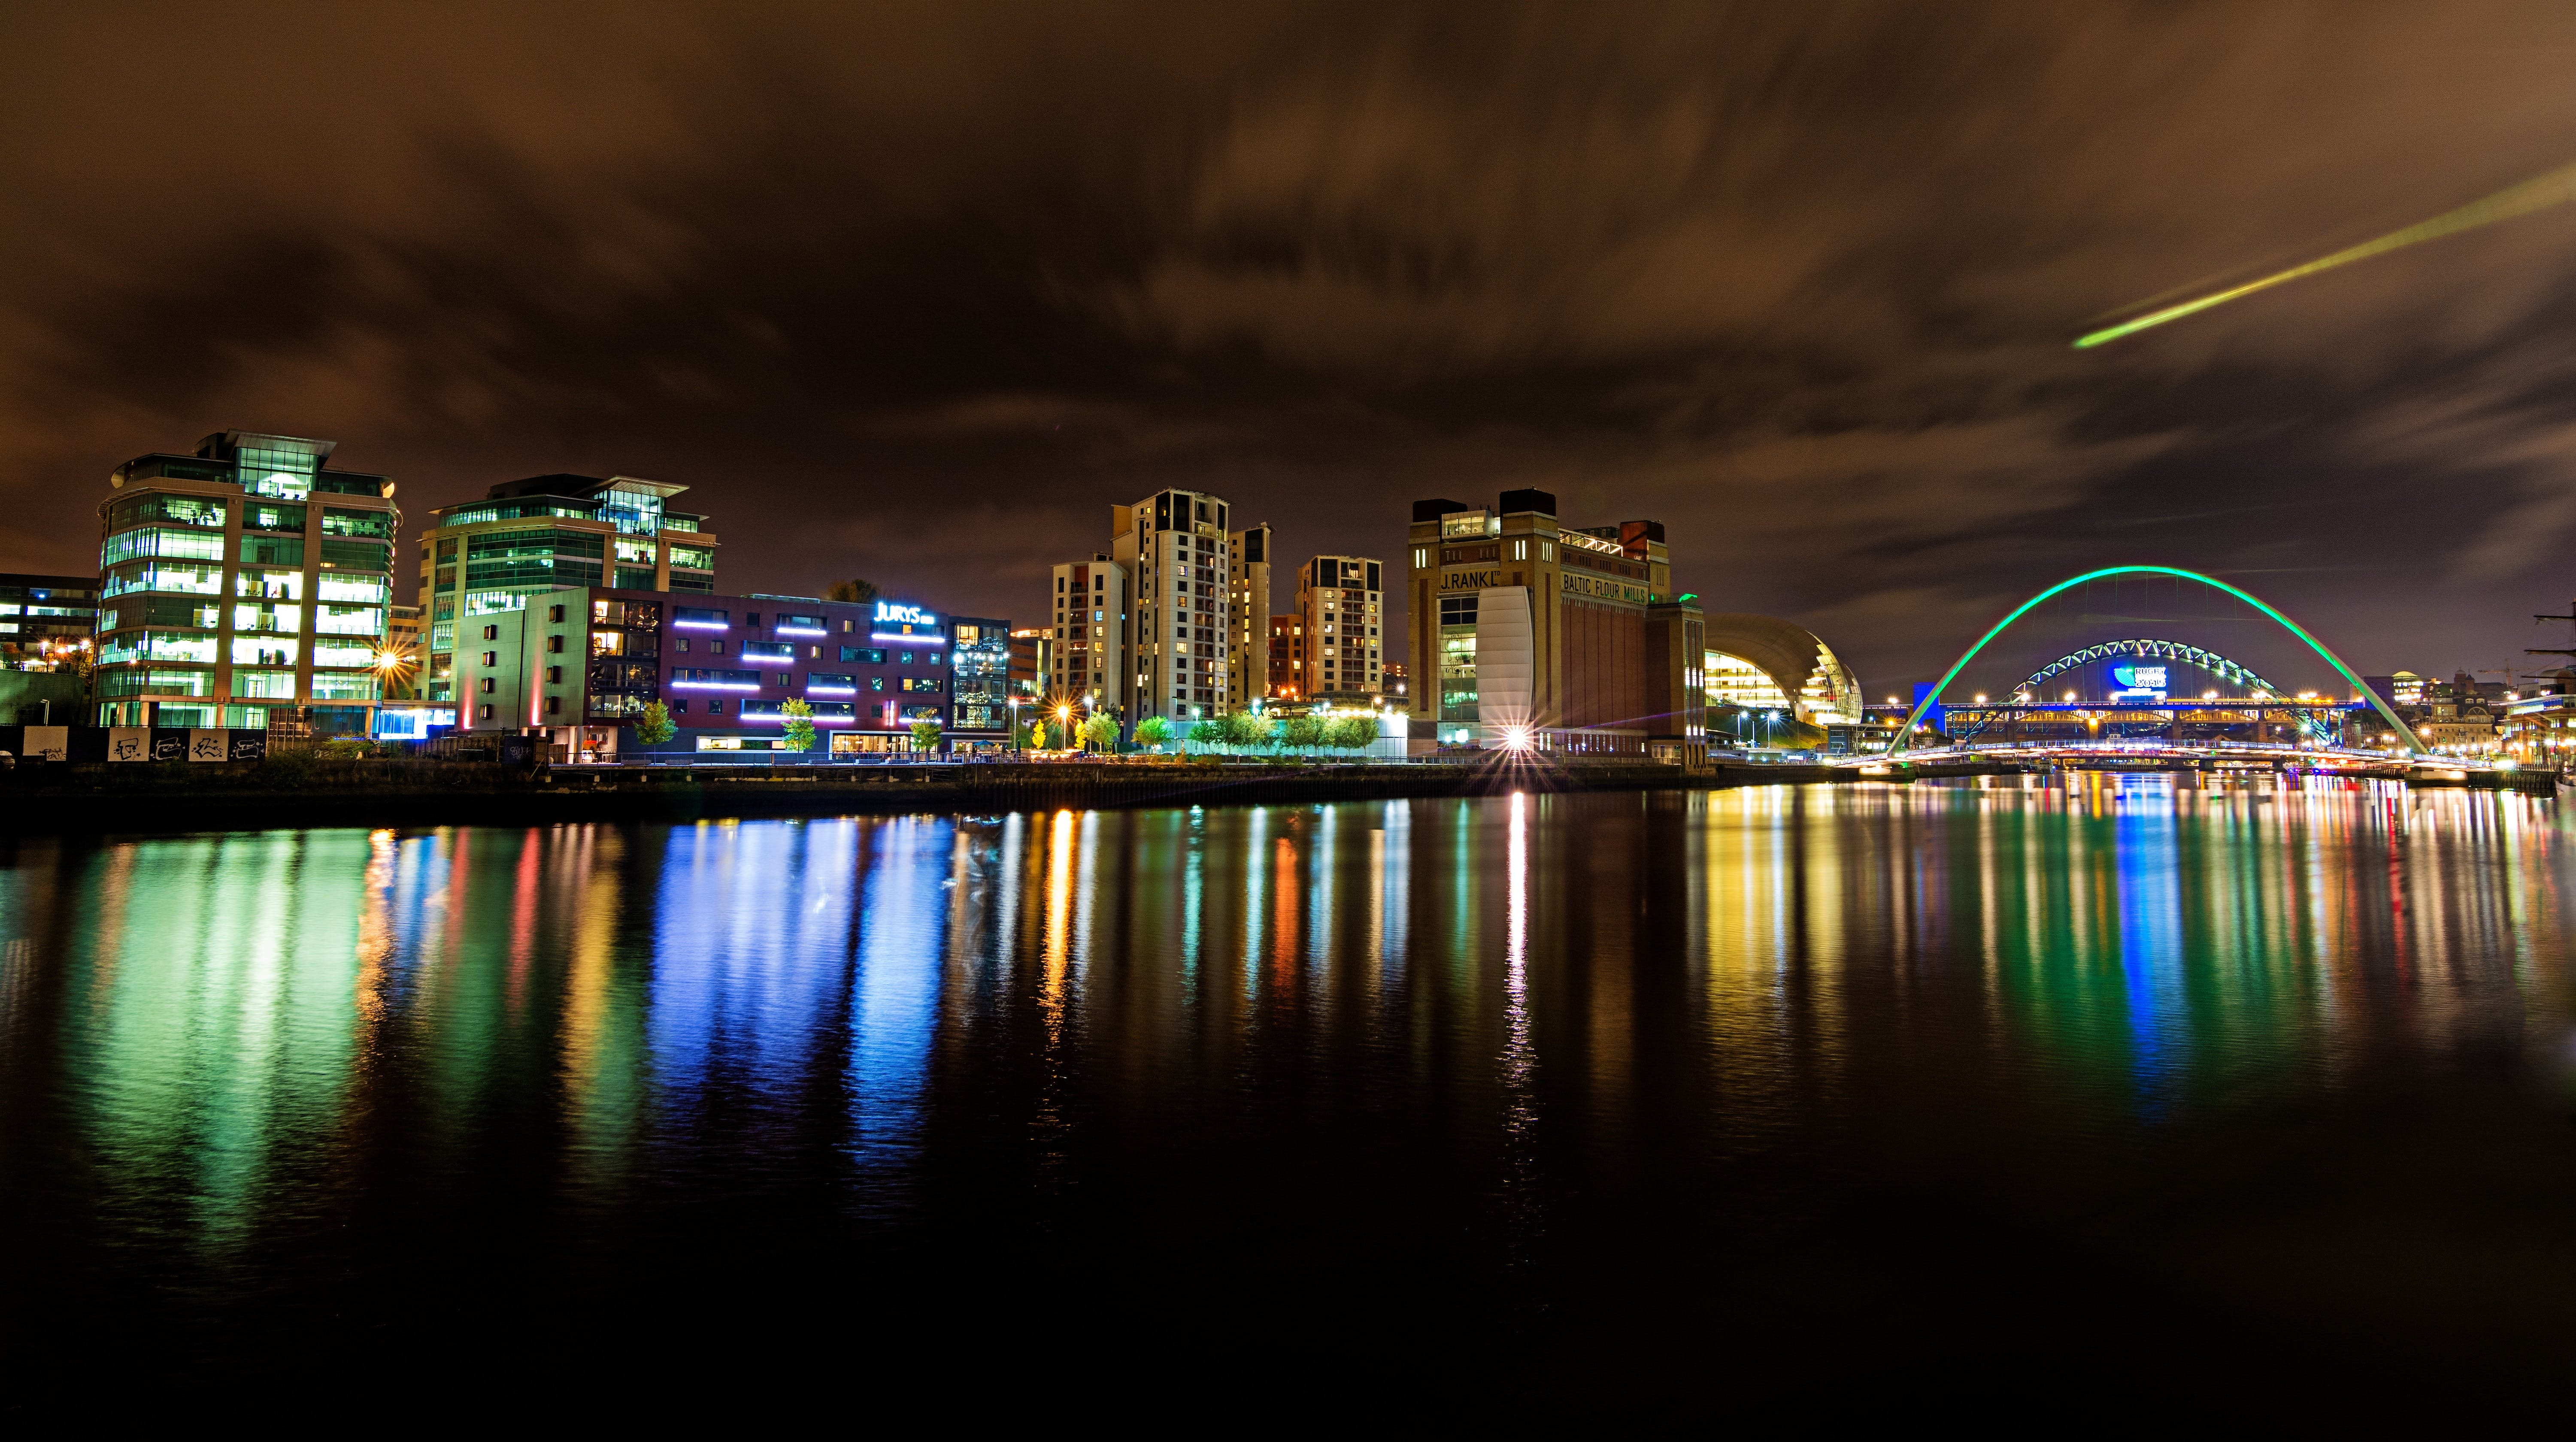 Cityscape at Nighttime Reflecting on Body of Water